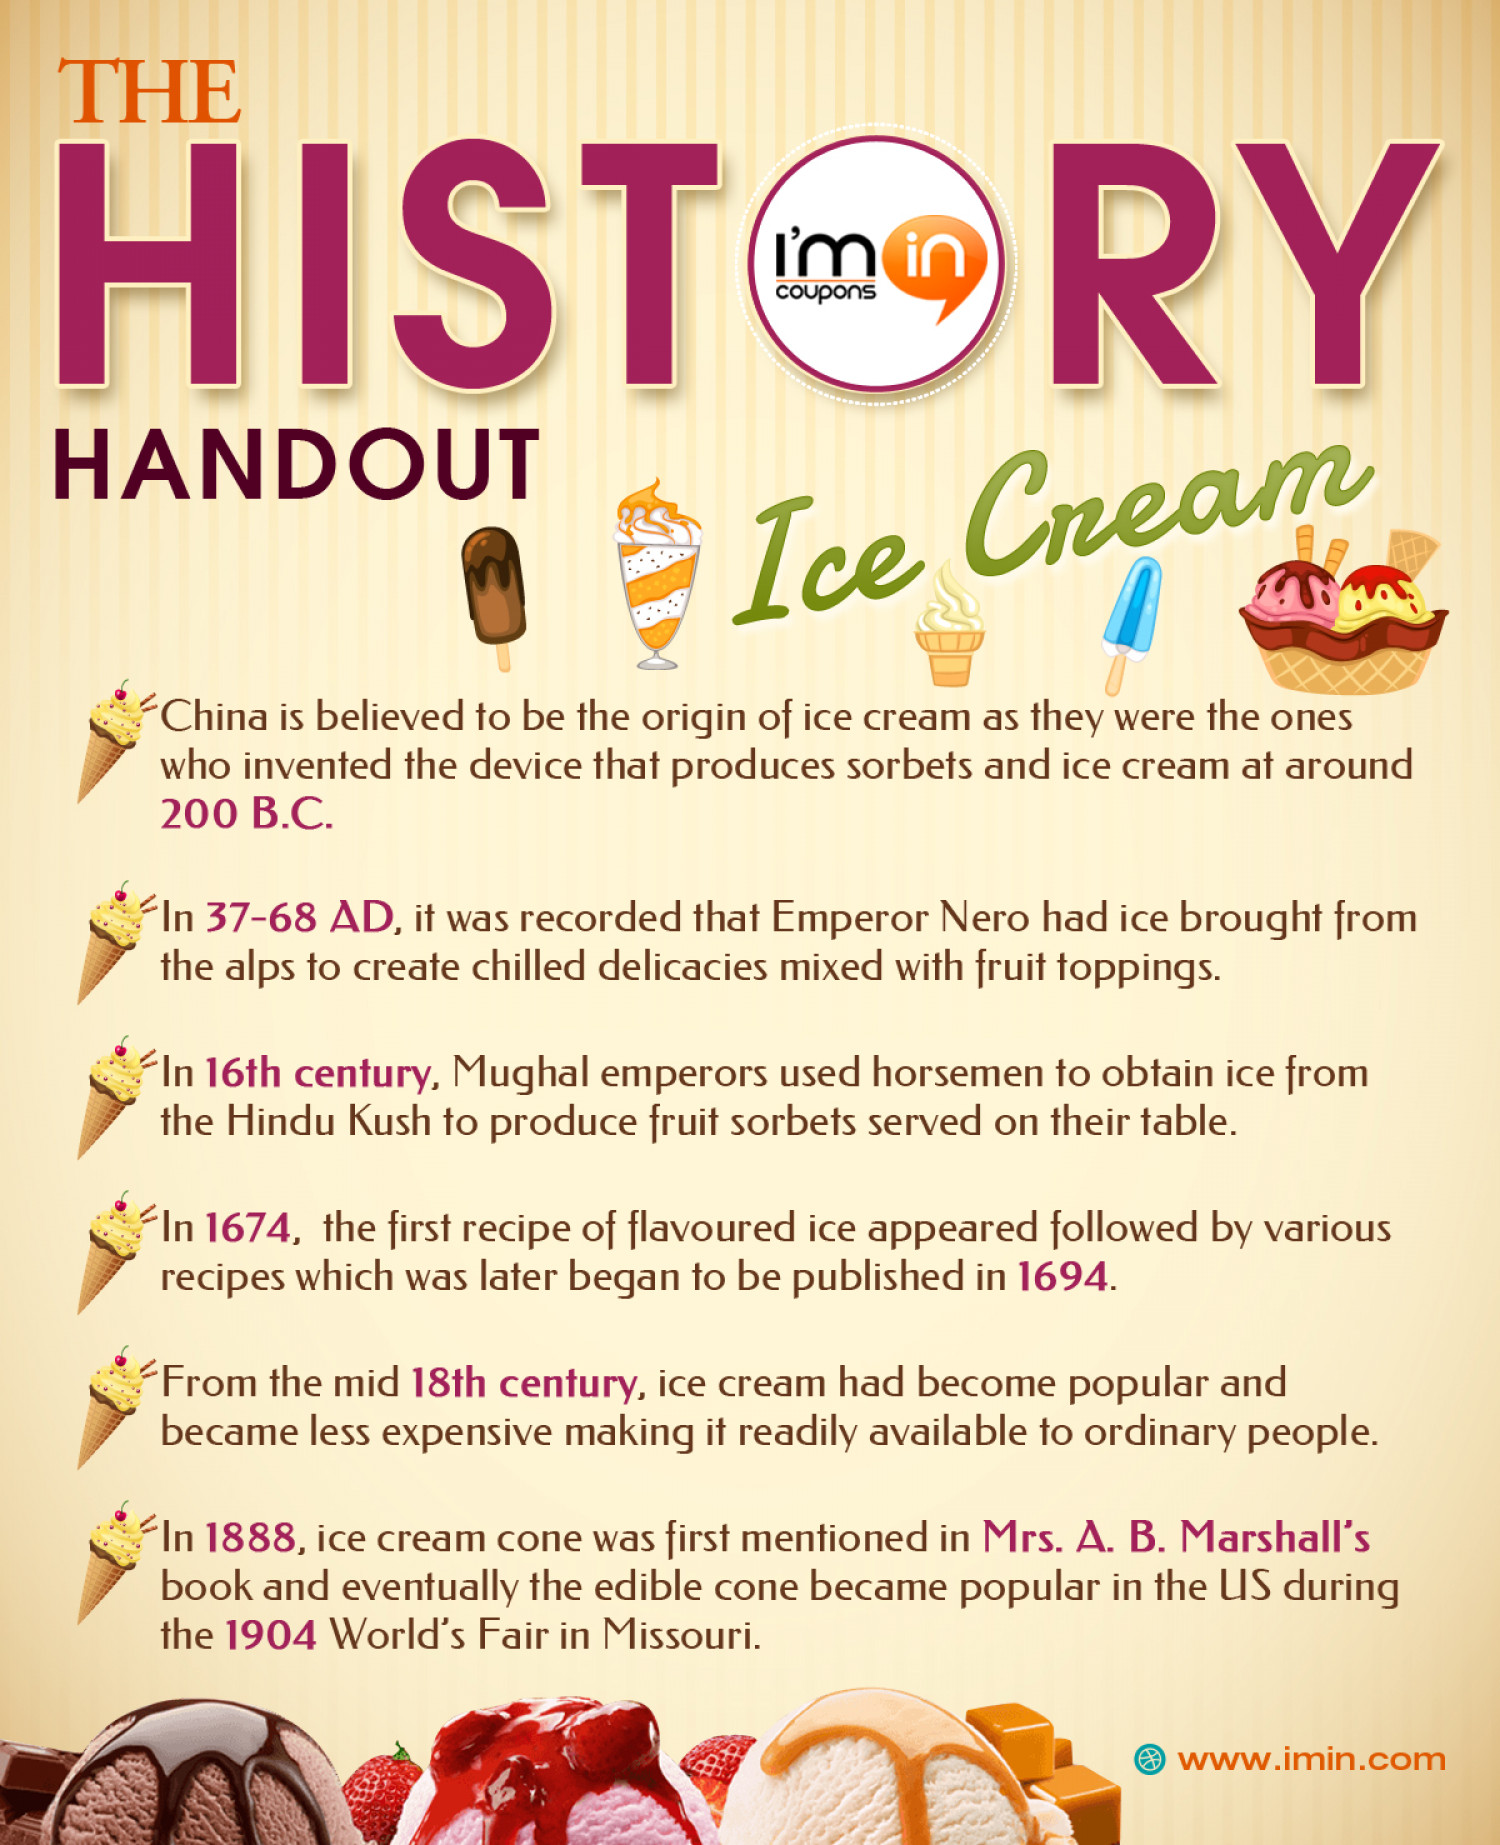 The History Handout - Ice Cream | Visual.ly